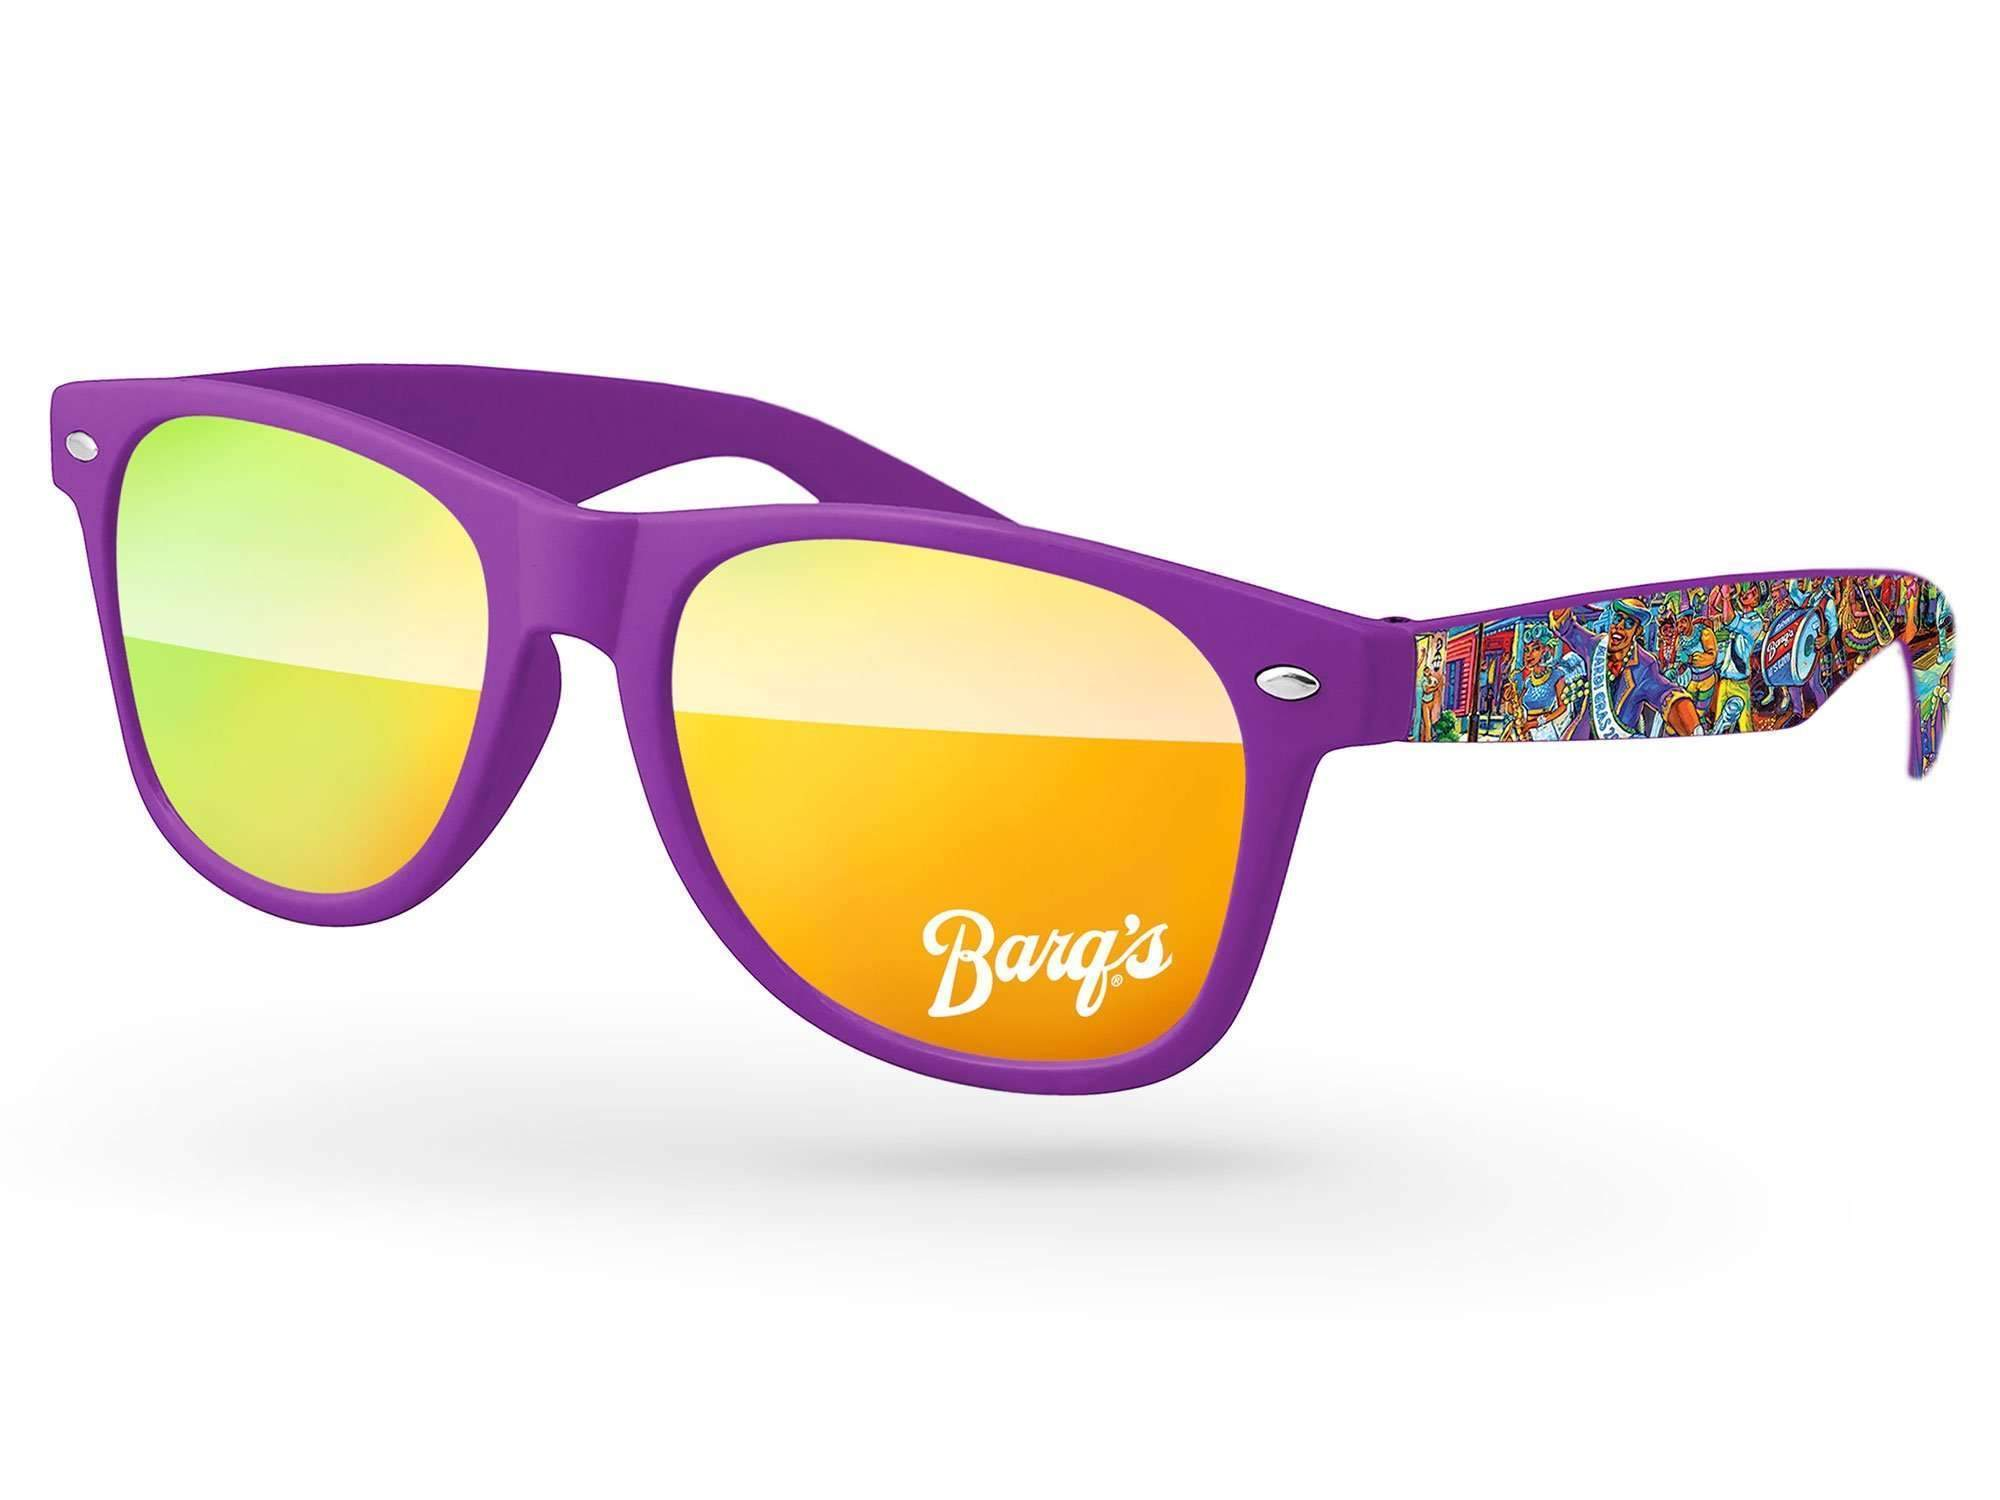 RM550 - Retro Mirror Promotional Sunglasses w/ 1-color lens imprint & full-color arms heat transfer